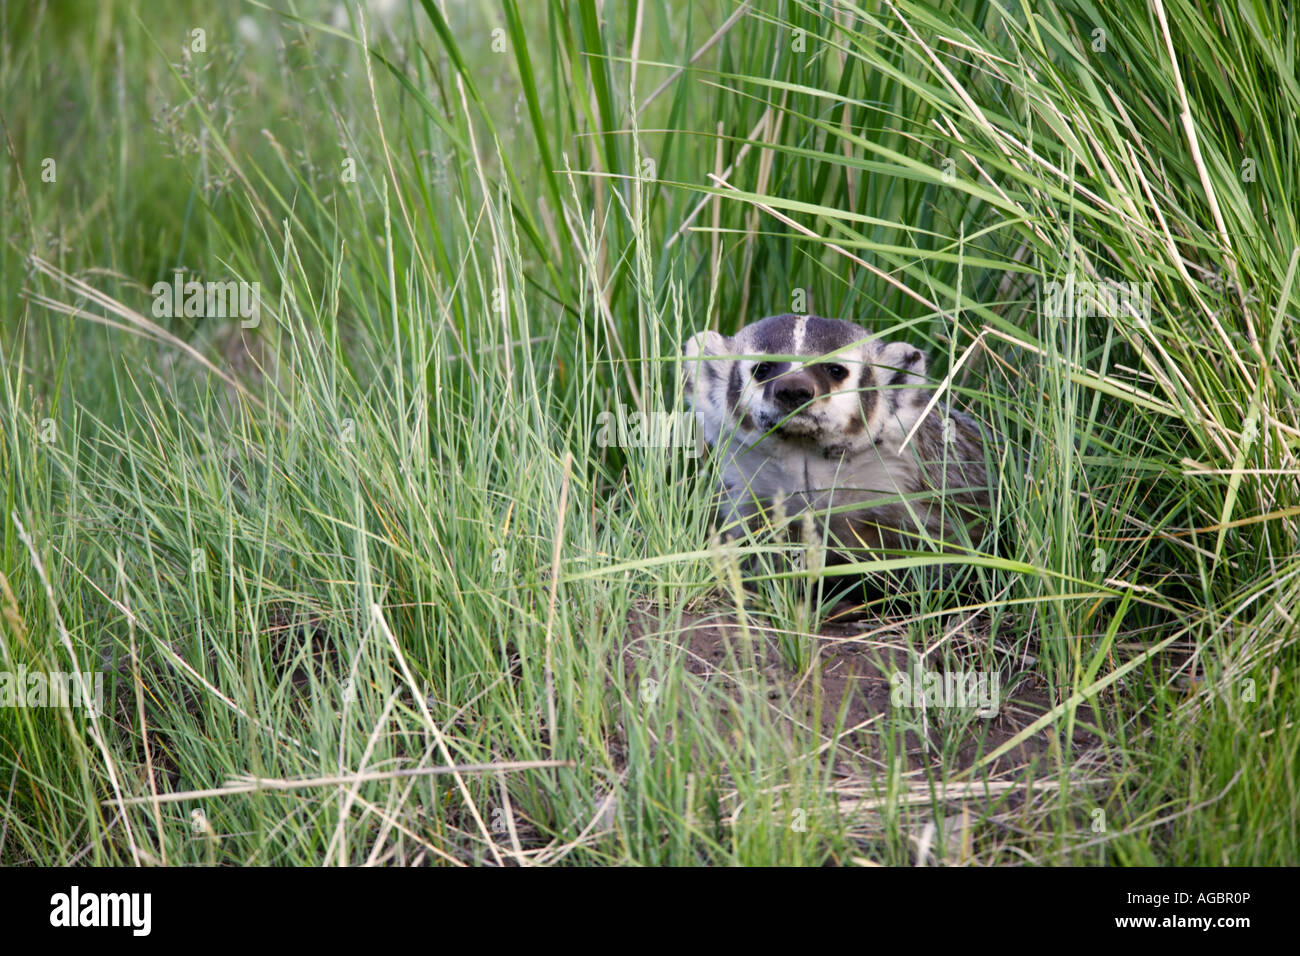 A Badger Yellowstone National Park Wyoming - Stock Image